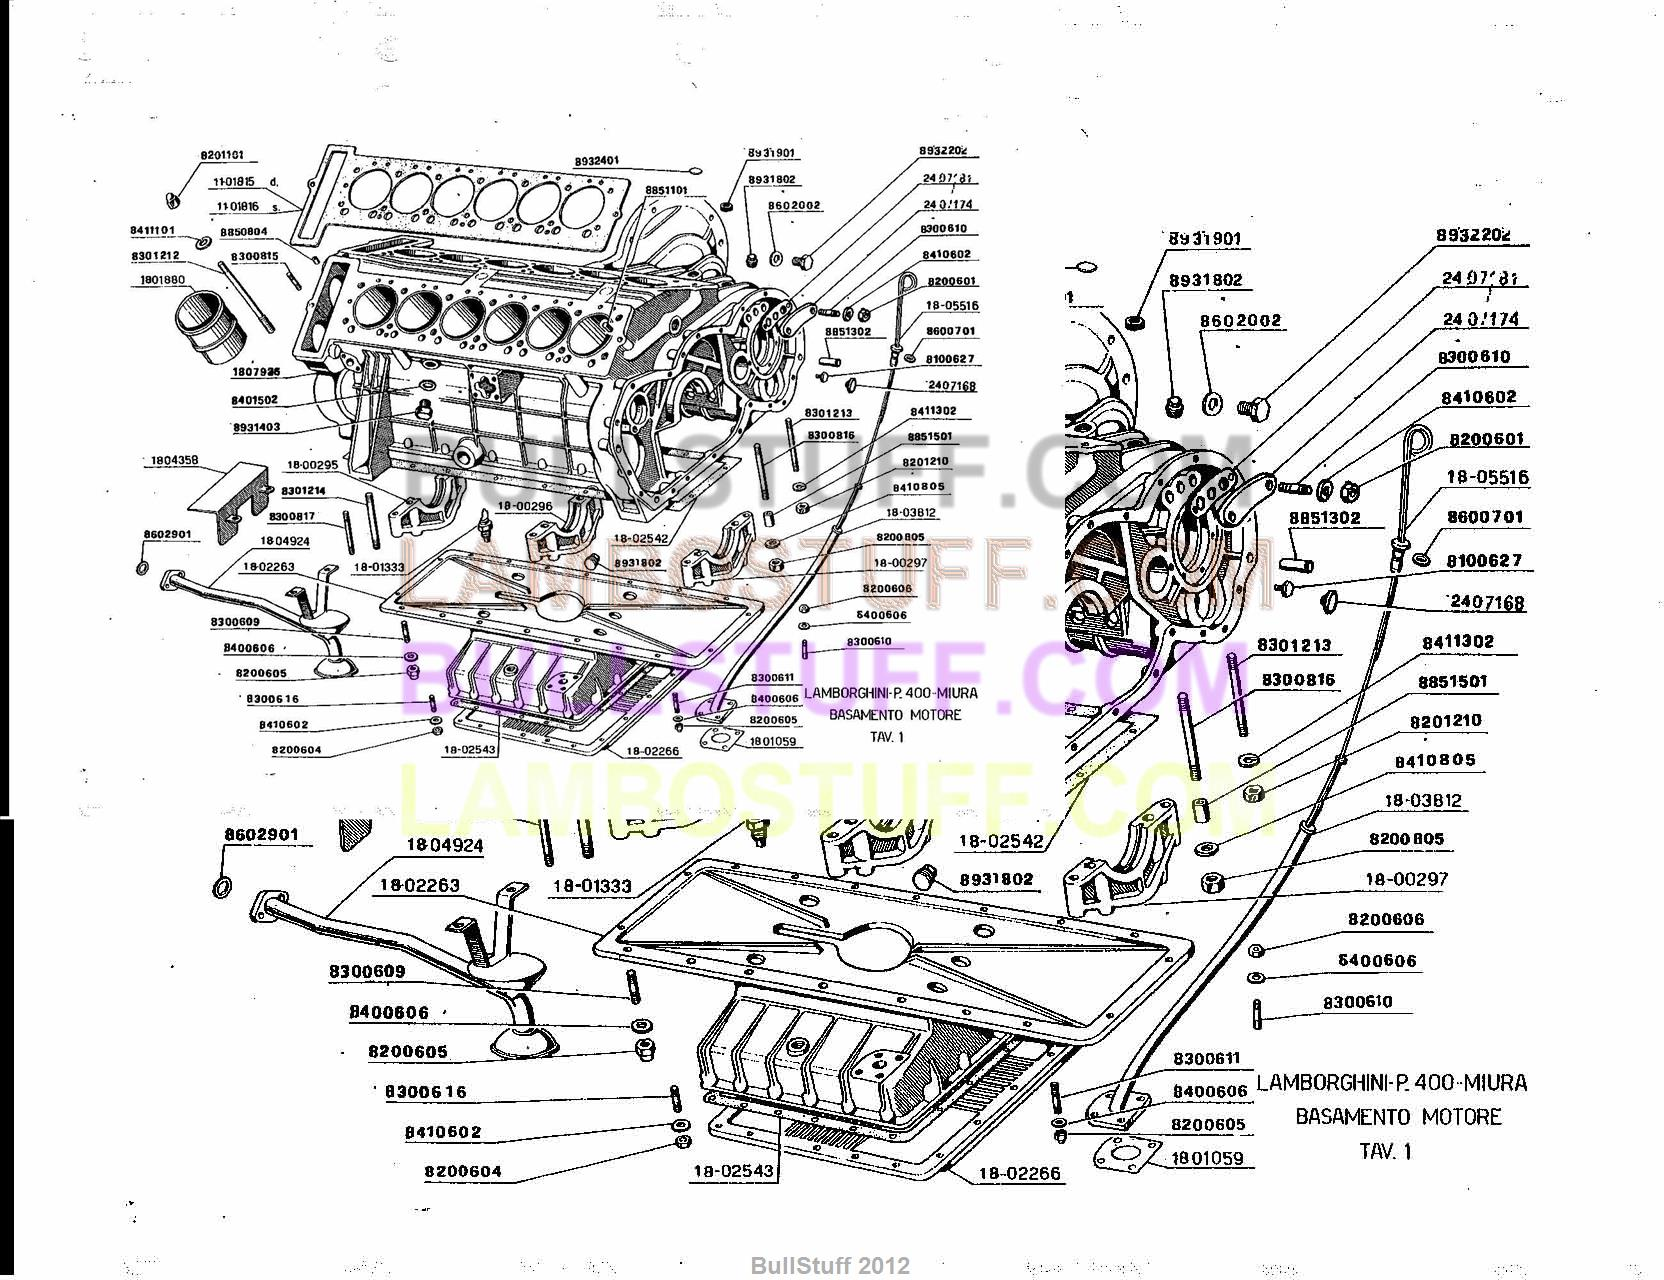 1966 1972 lamborghini miura usa engine (1) bullstuff Lamborghini Electrical Diagram Lamborghini Cooling Diagram